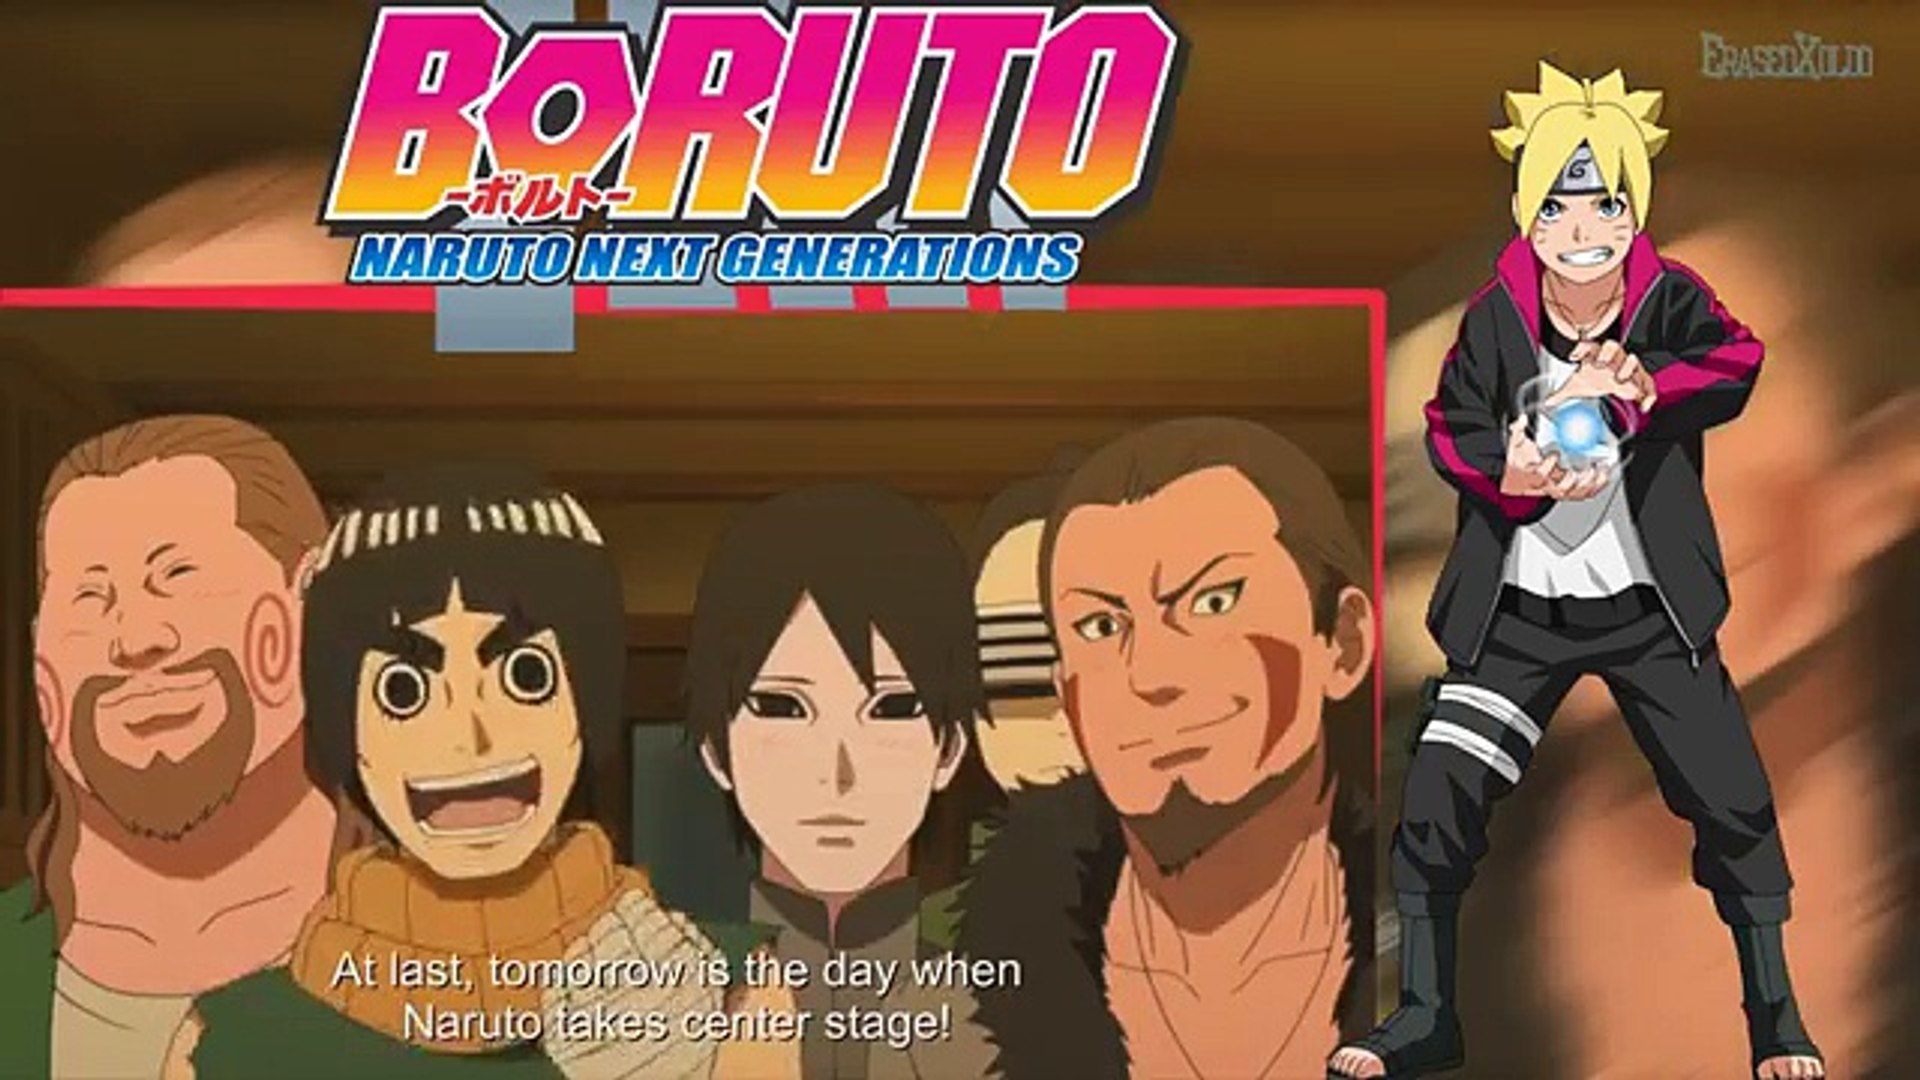 Drunk Naruto came home  Boruto Naruto Next Generations